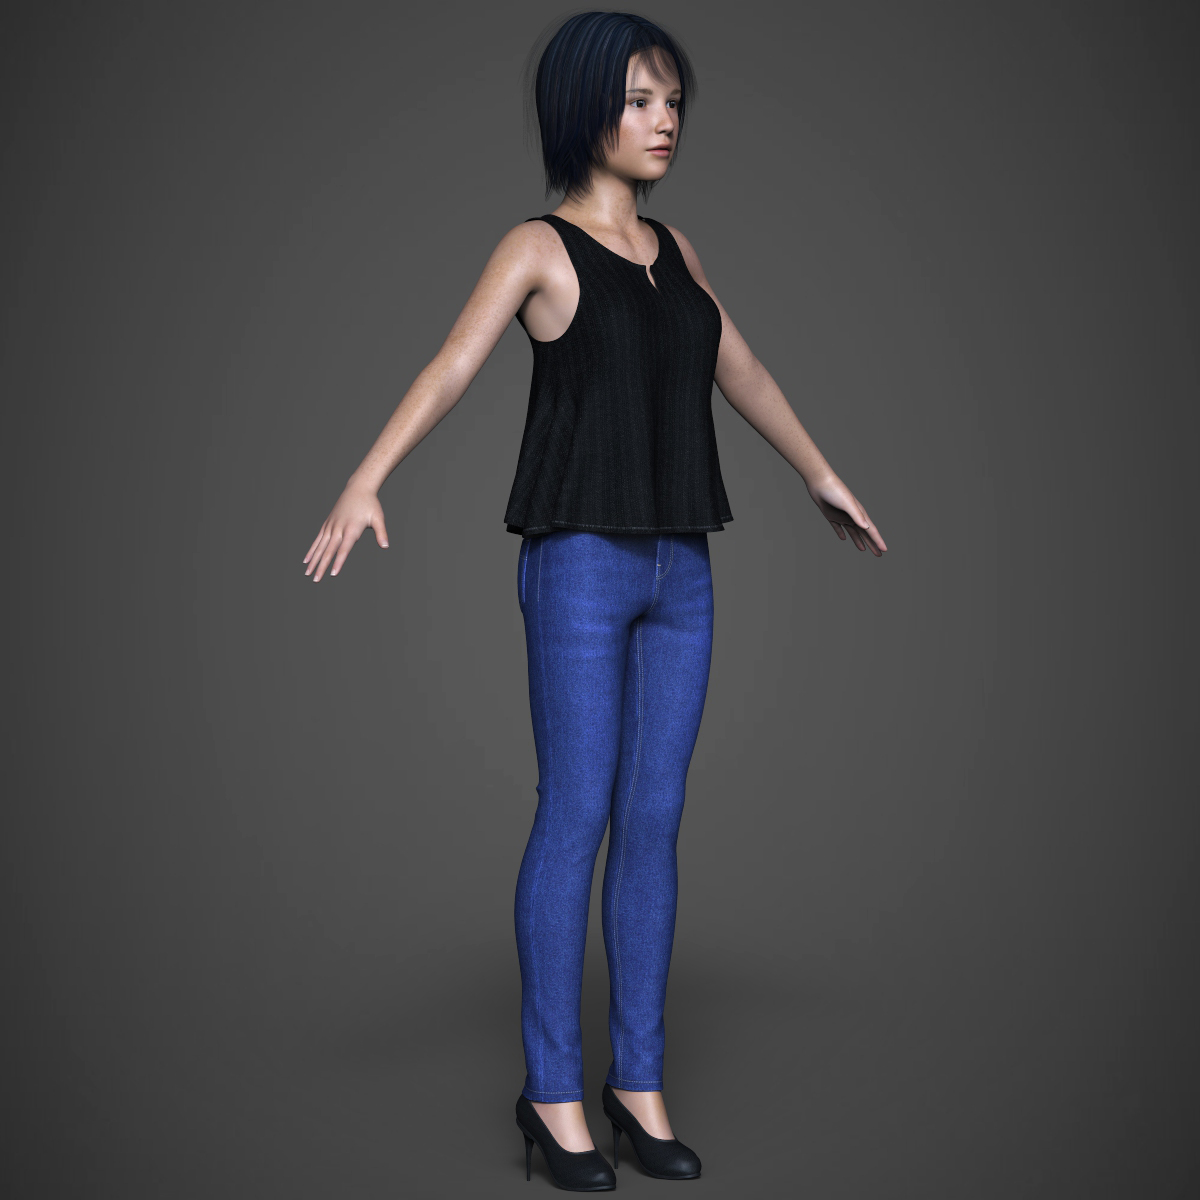 beautiful teen girl 3d model max fbx c4d ma mb texture obj 252316